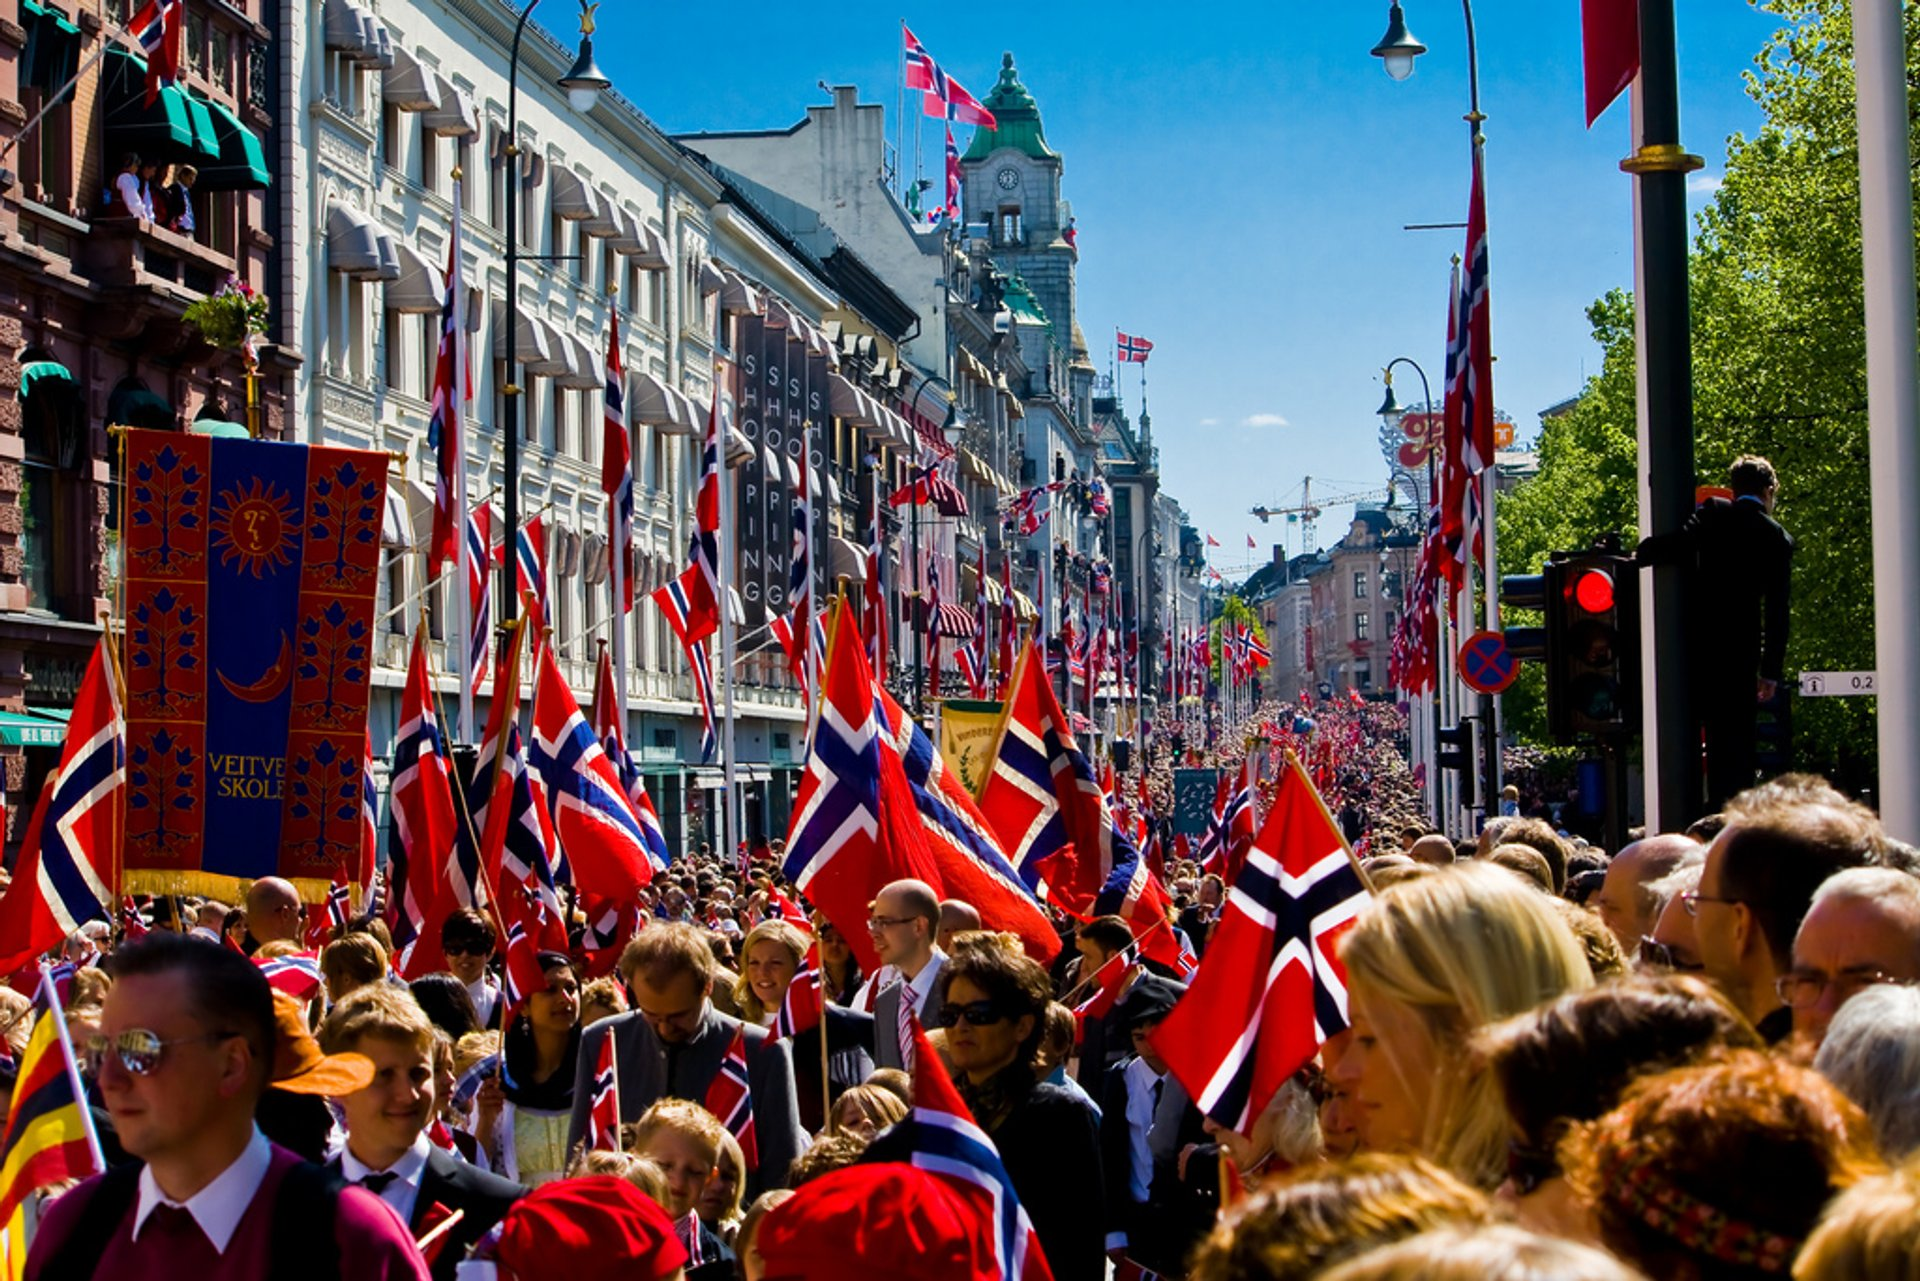 Best time for Norway's National Day in Norway 2020